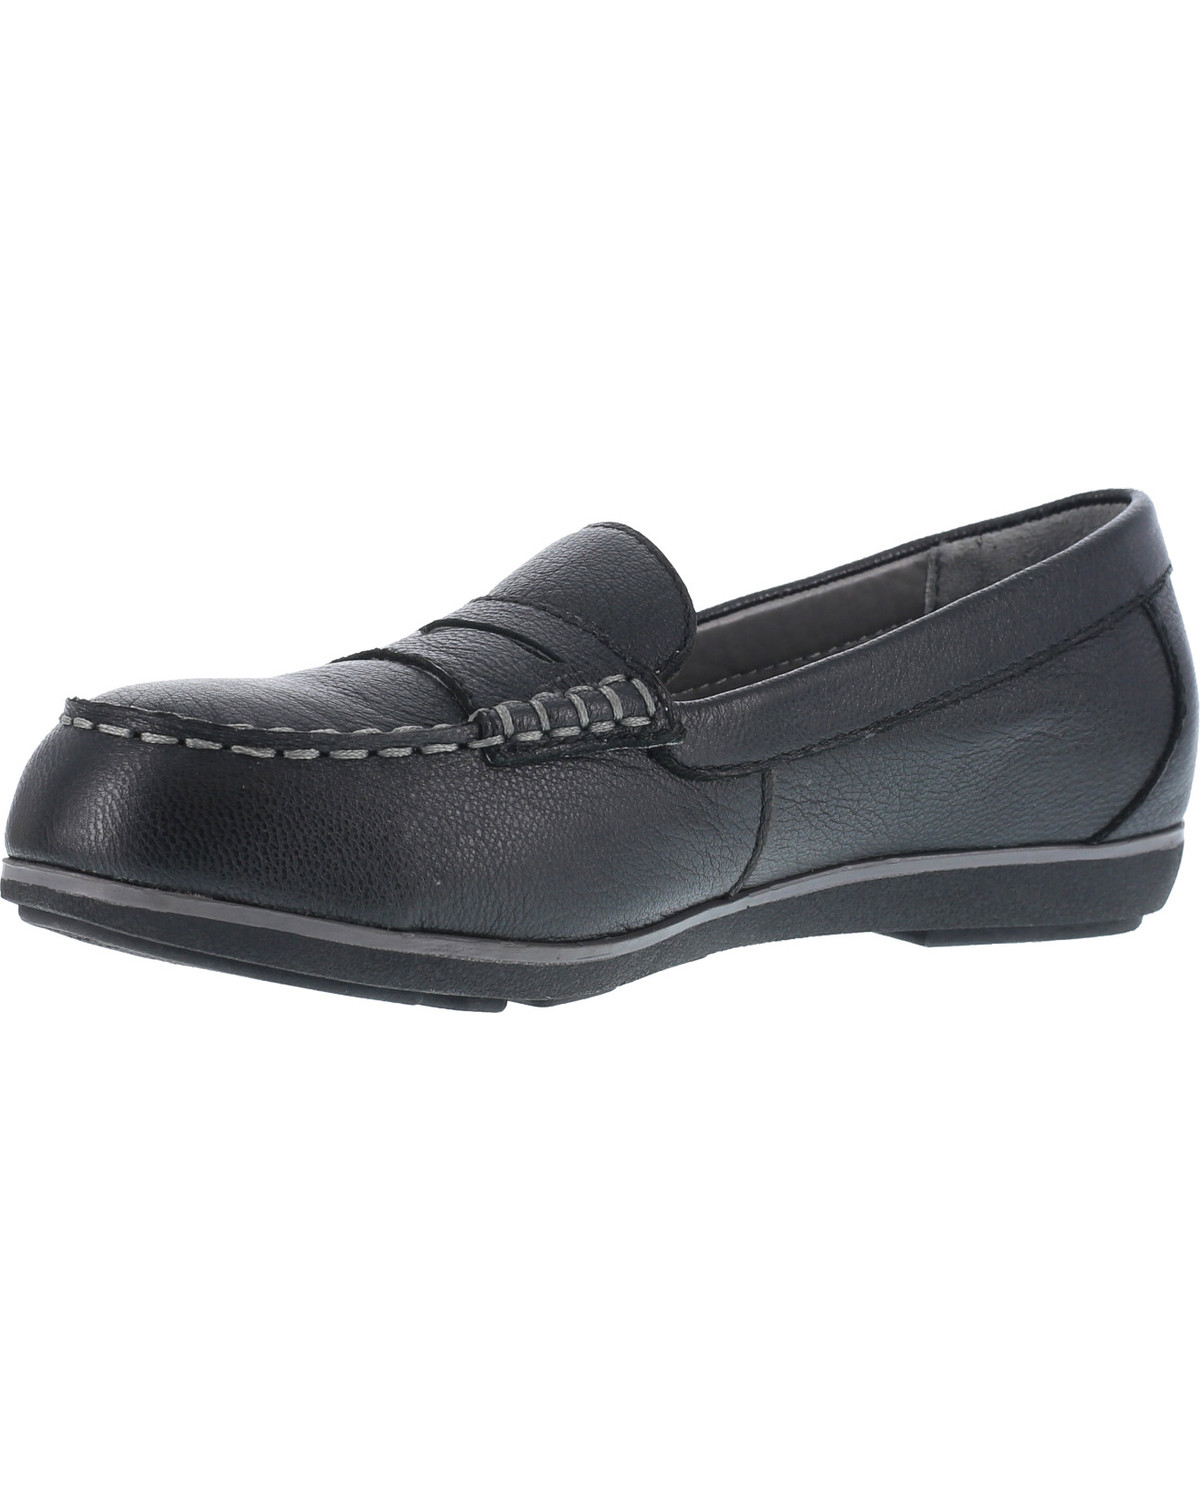 Rockport Womenu0026#39;s Top Shore Penny Loafer Shoes - Steel Toe ...